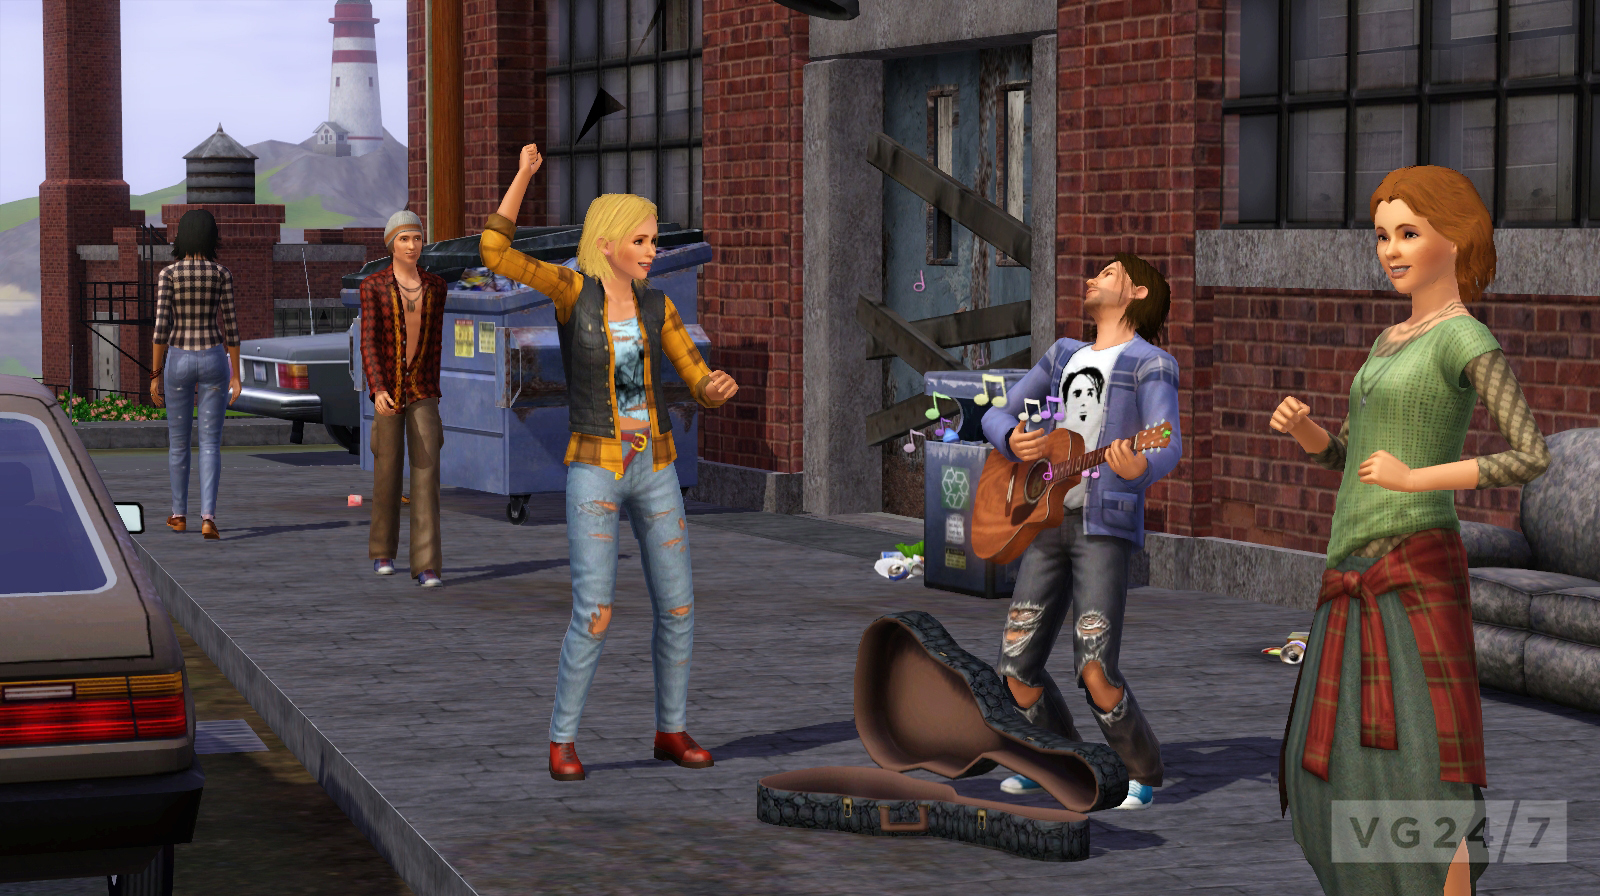 The sims 3 70s 80s and 90s stuff pack lands on pc mac for House music 80s 90s